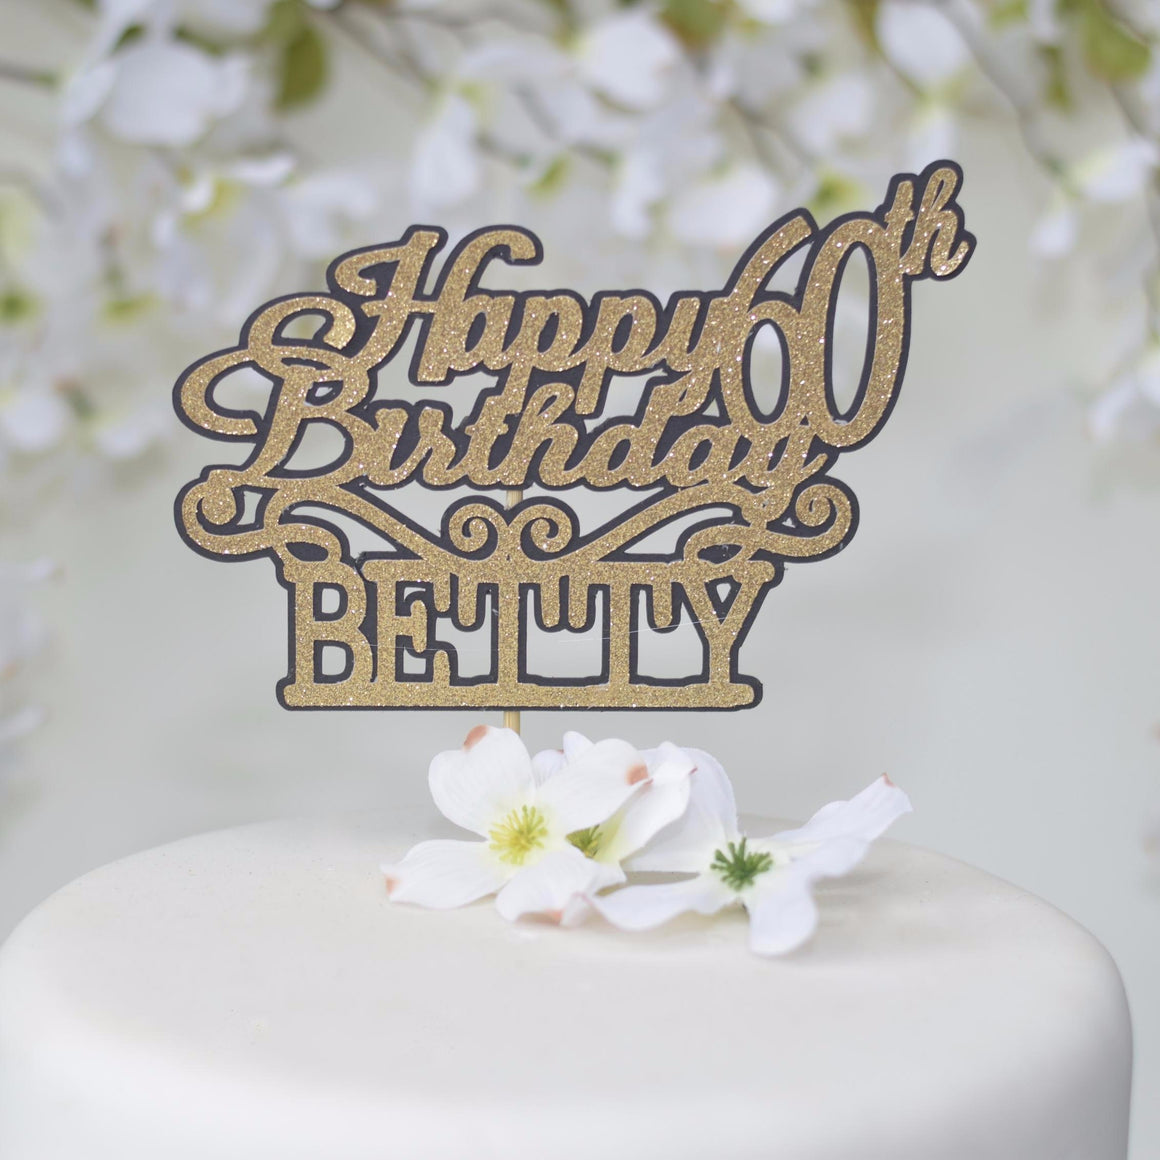 Happy 60th Birthday Betty gold sparkle cake topper with black outline on a white cake